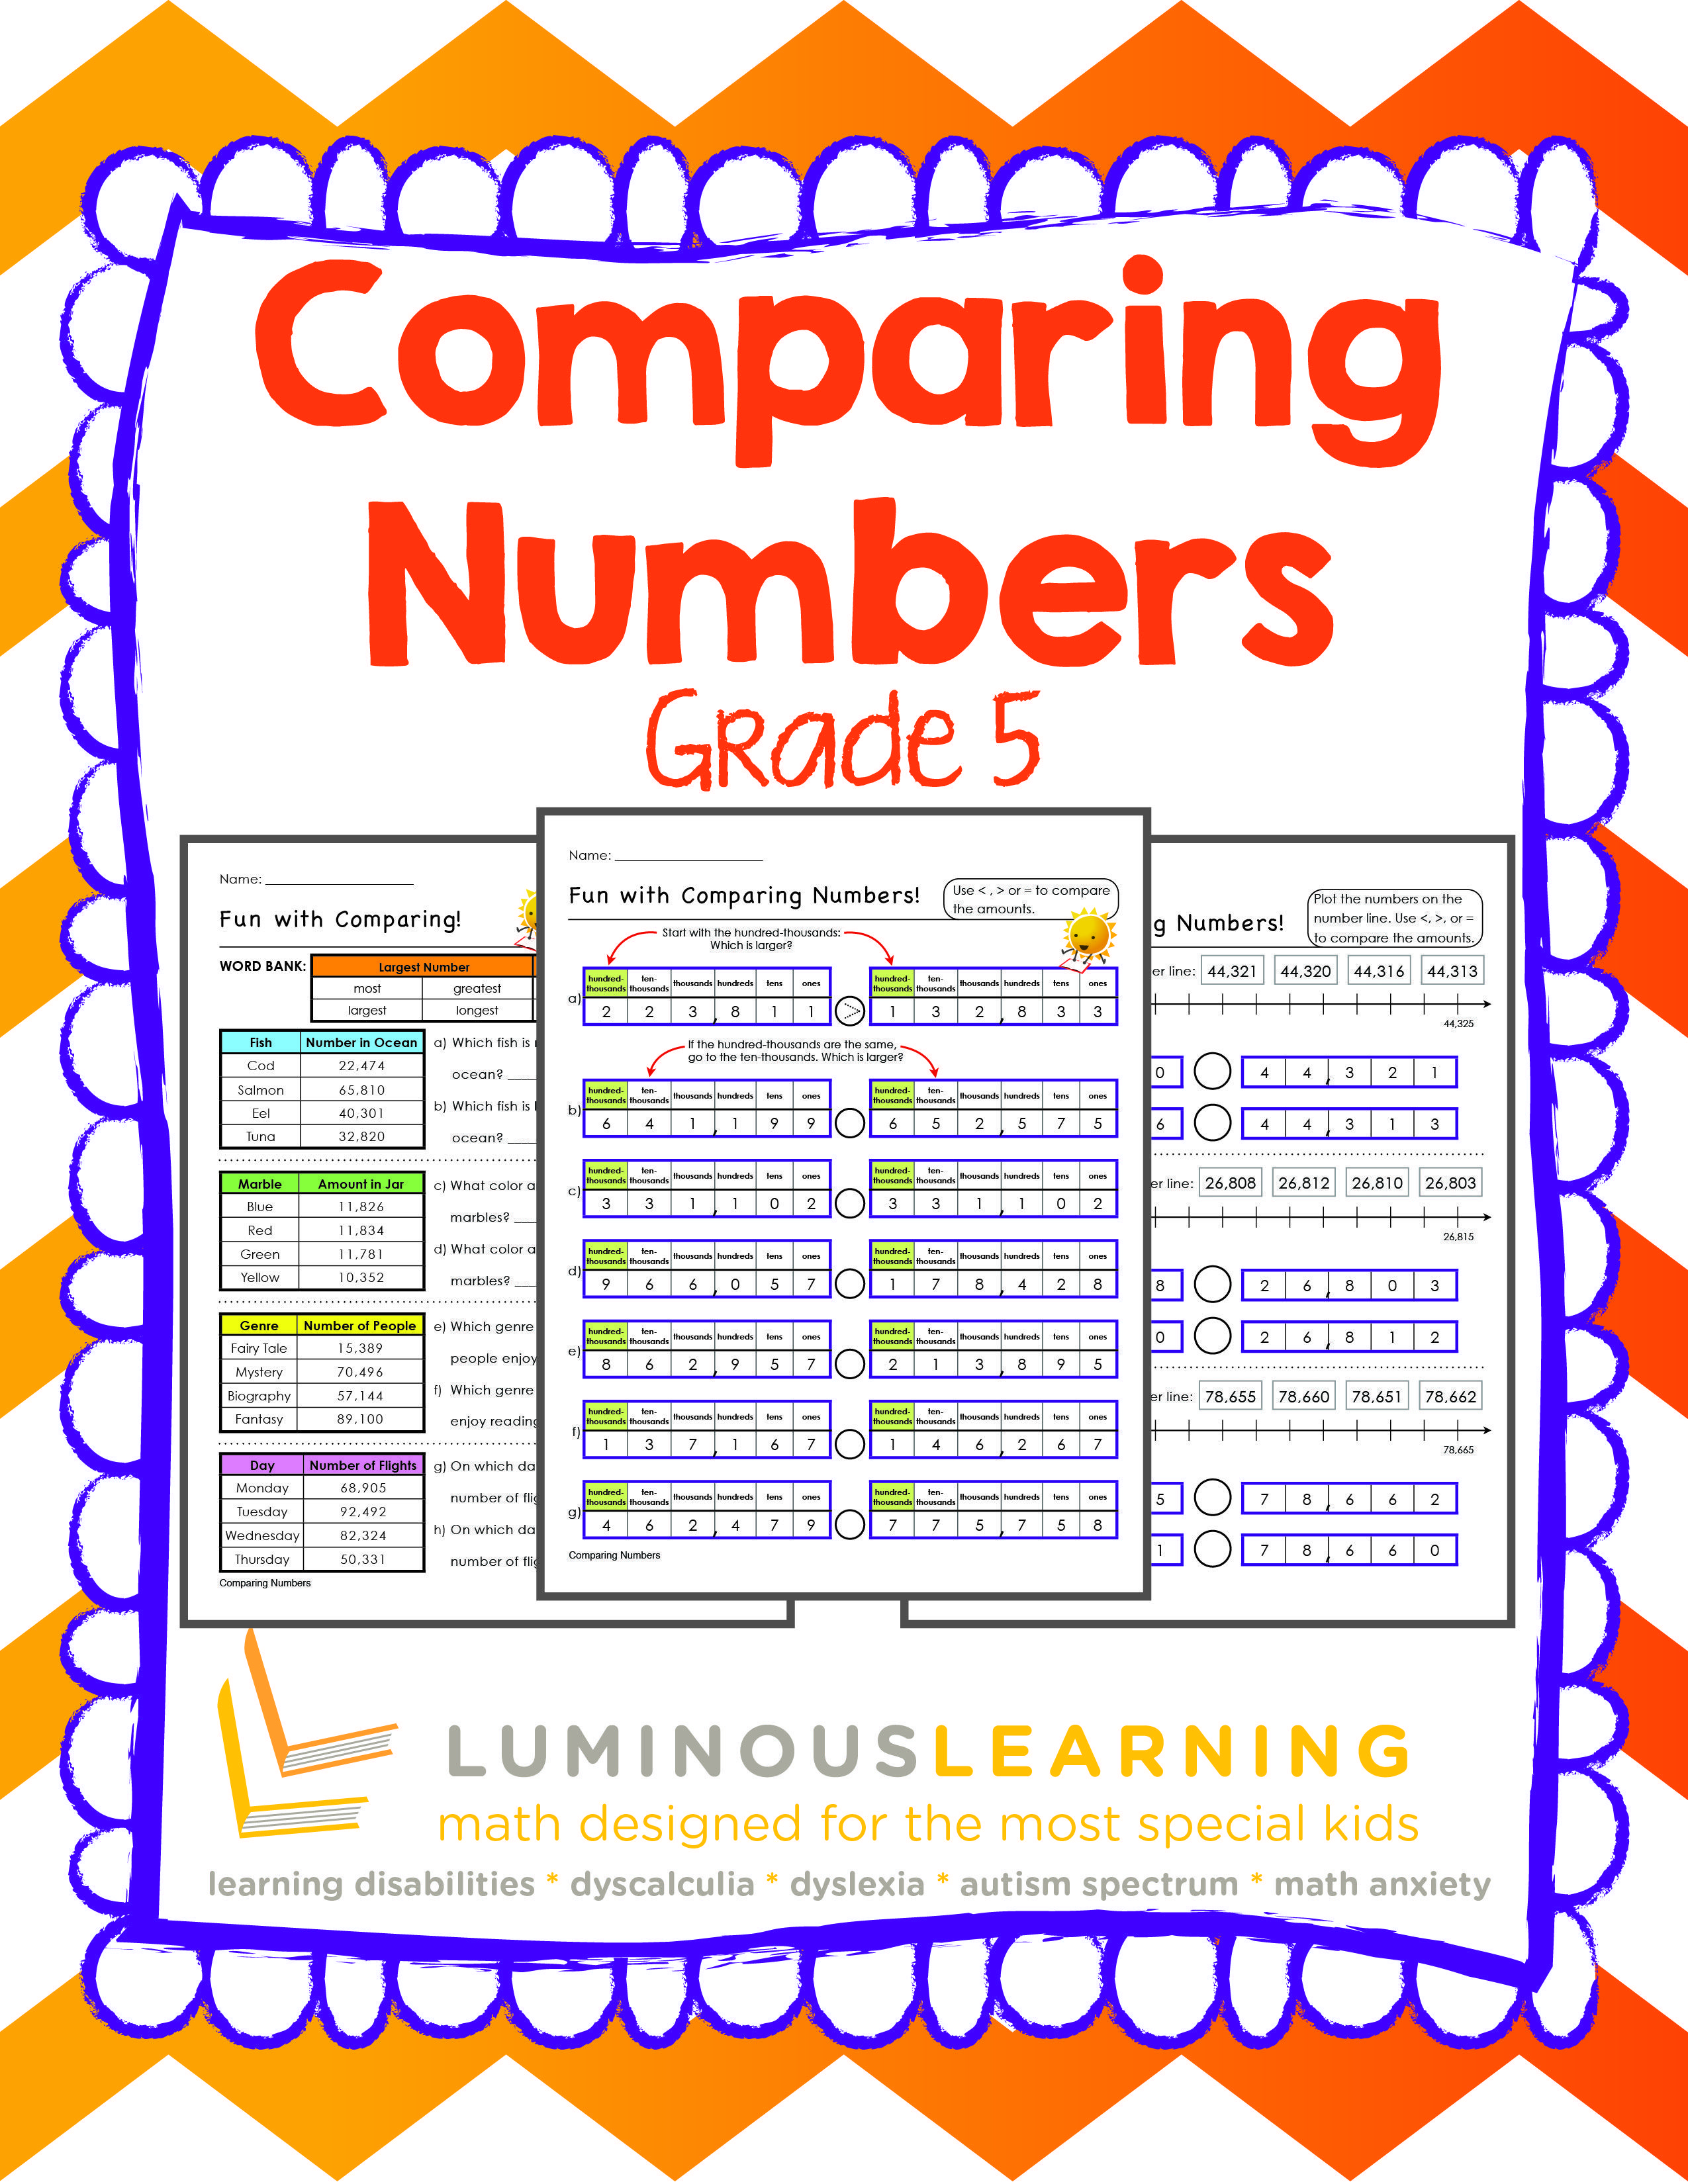 Grade 5 Comparing Numbers Making Math Visual For